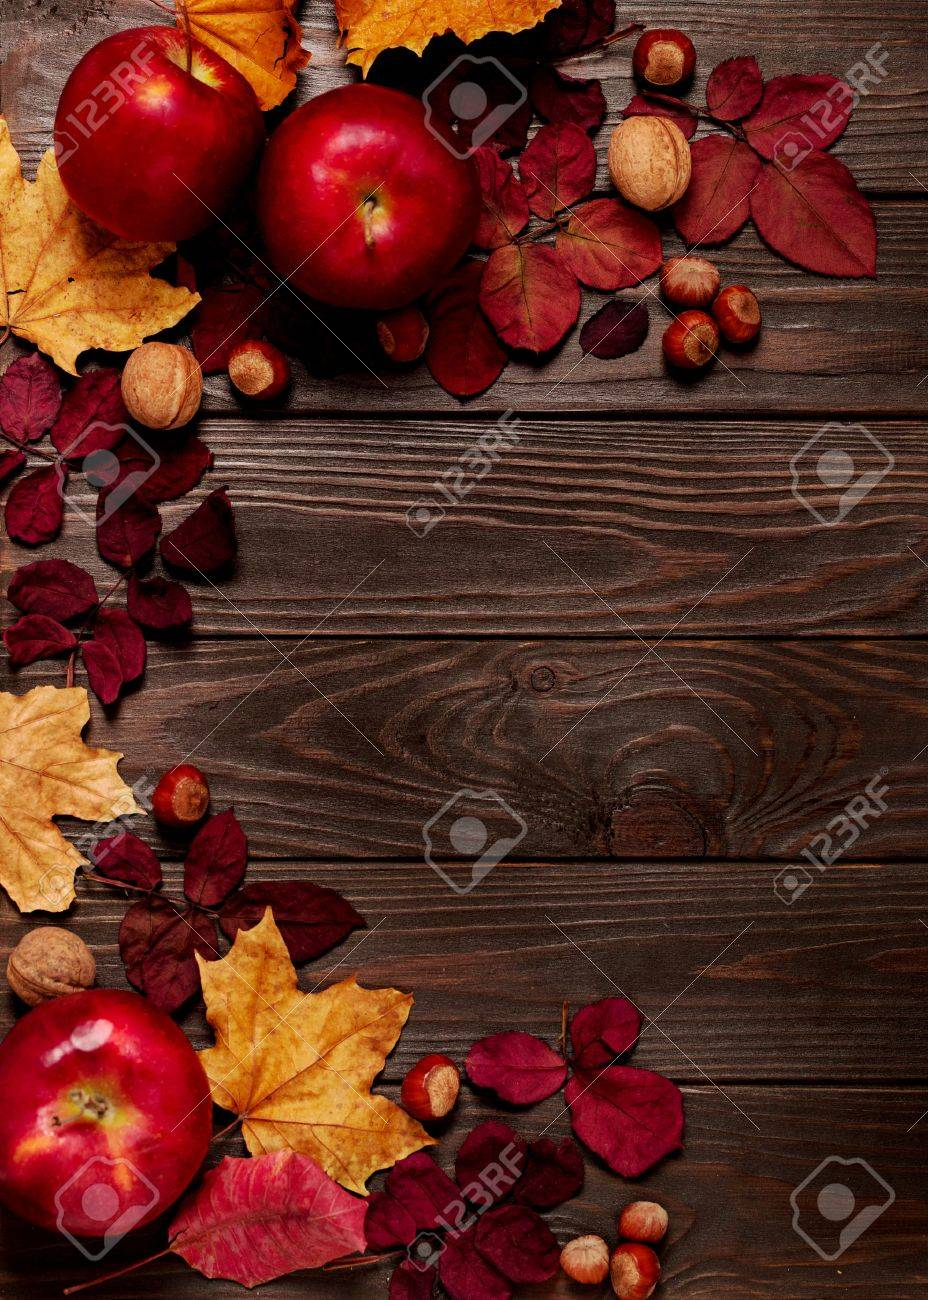 Flat lay frame of autumn crimson and yellow leaves, hazelnuts, walnuts and apples on a dark wooden background. Selective focus. - 83530998